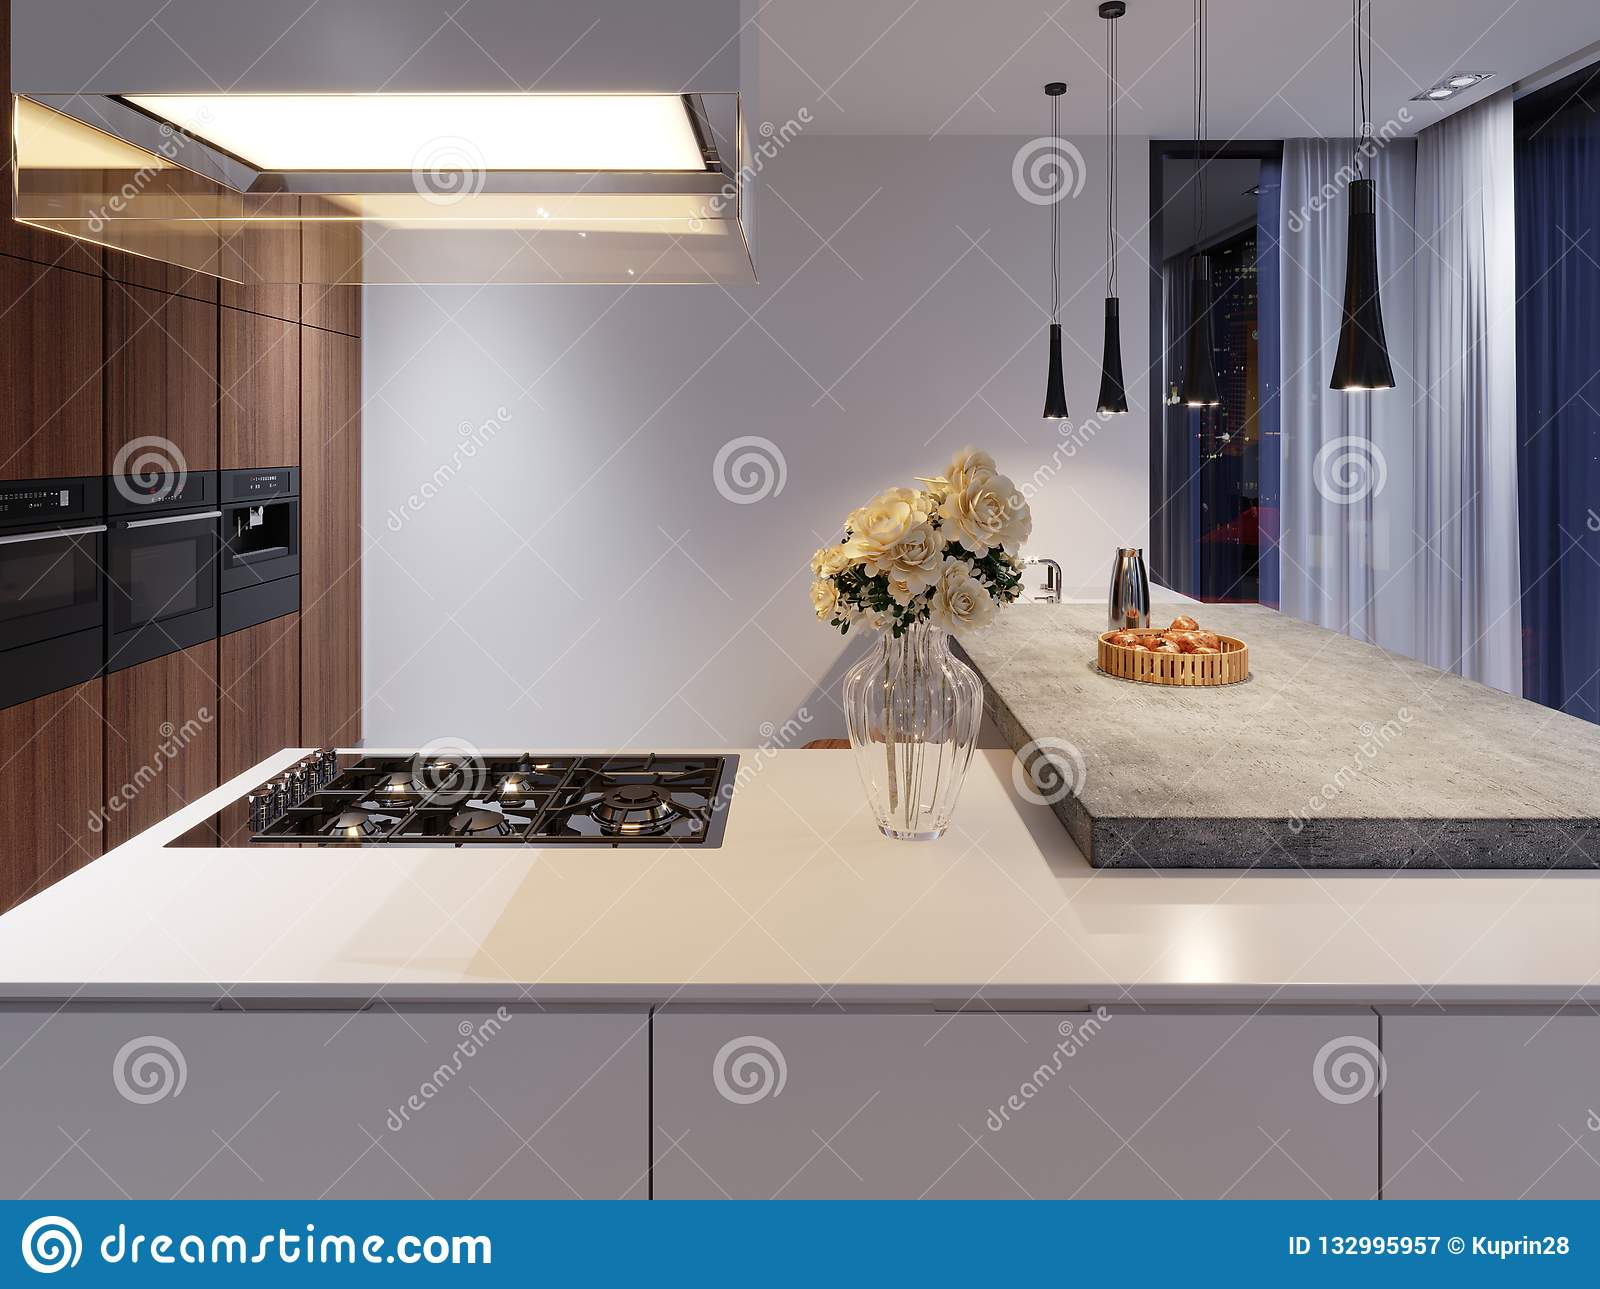 Contemporary Kitchen With Hob And Built In Appliances White And Hardwood Facade Concrete Table Top Bar Stock Illustration Illustration Of Appliances Appliance 132995957